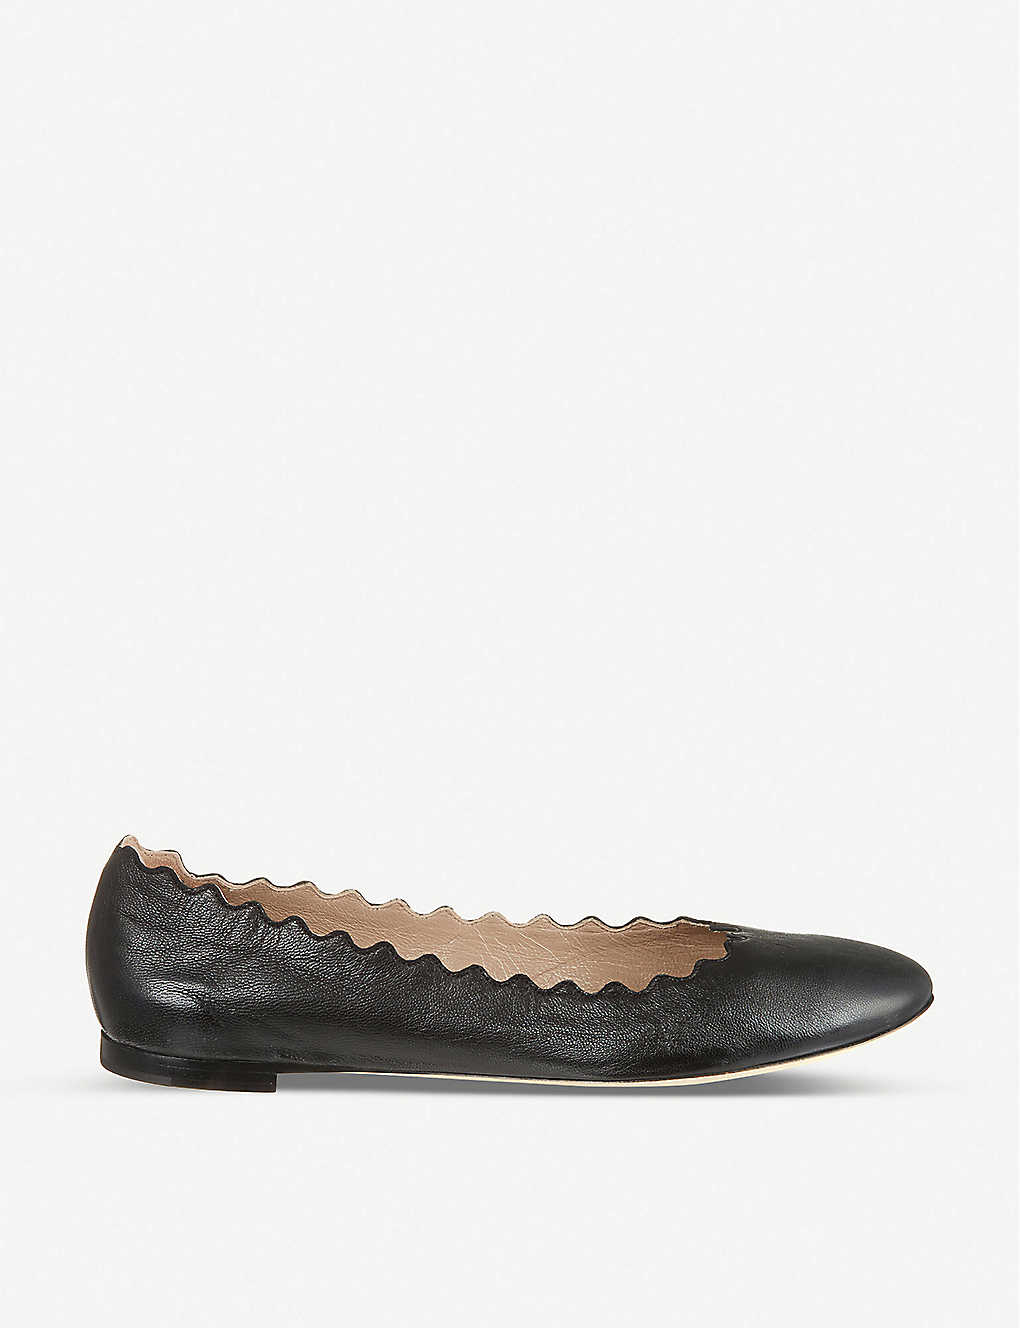 bb4d6634f CHLOE - Scallop leather ballet flats | Selfridges.com